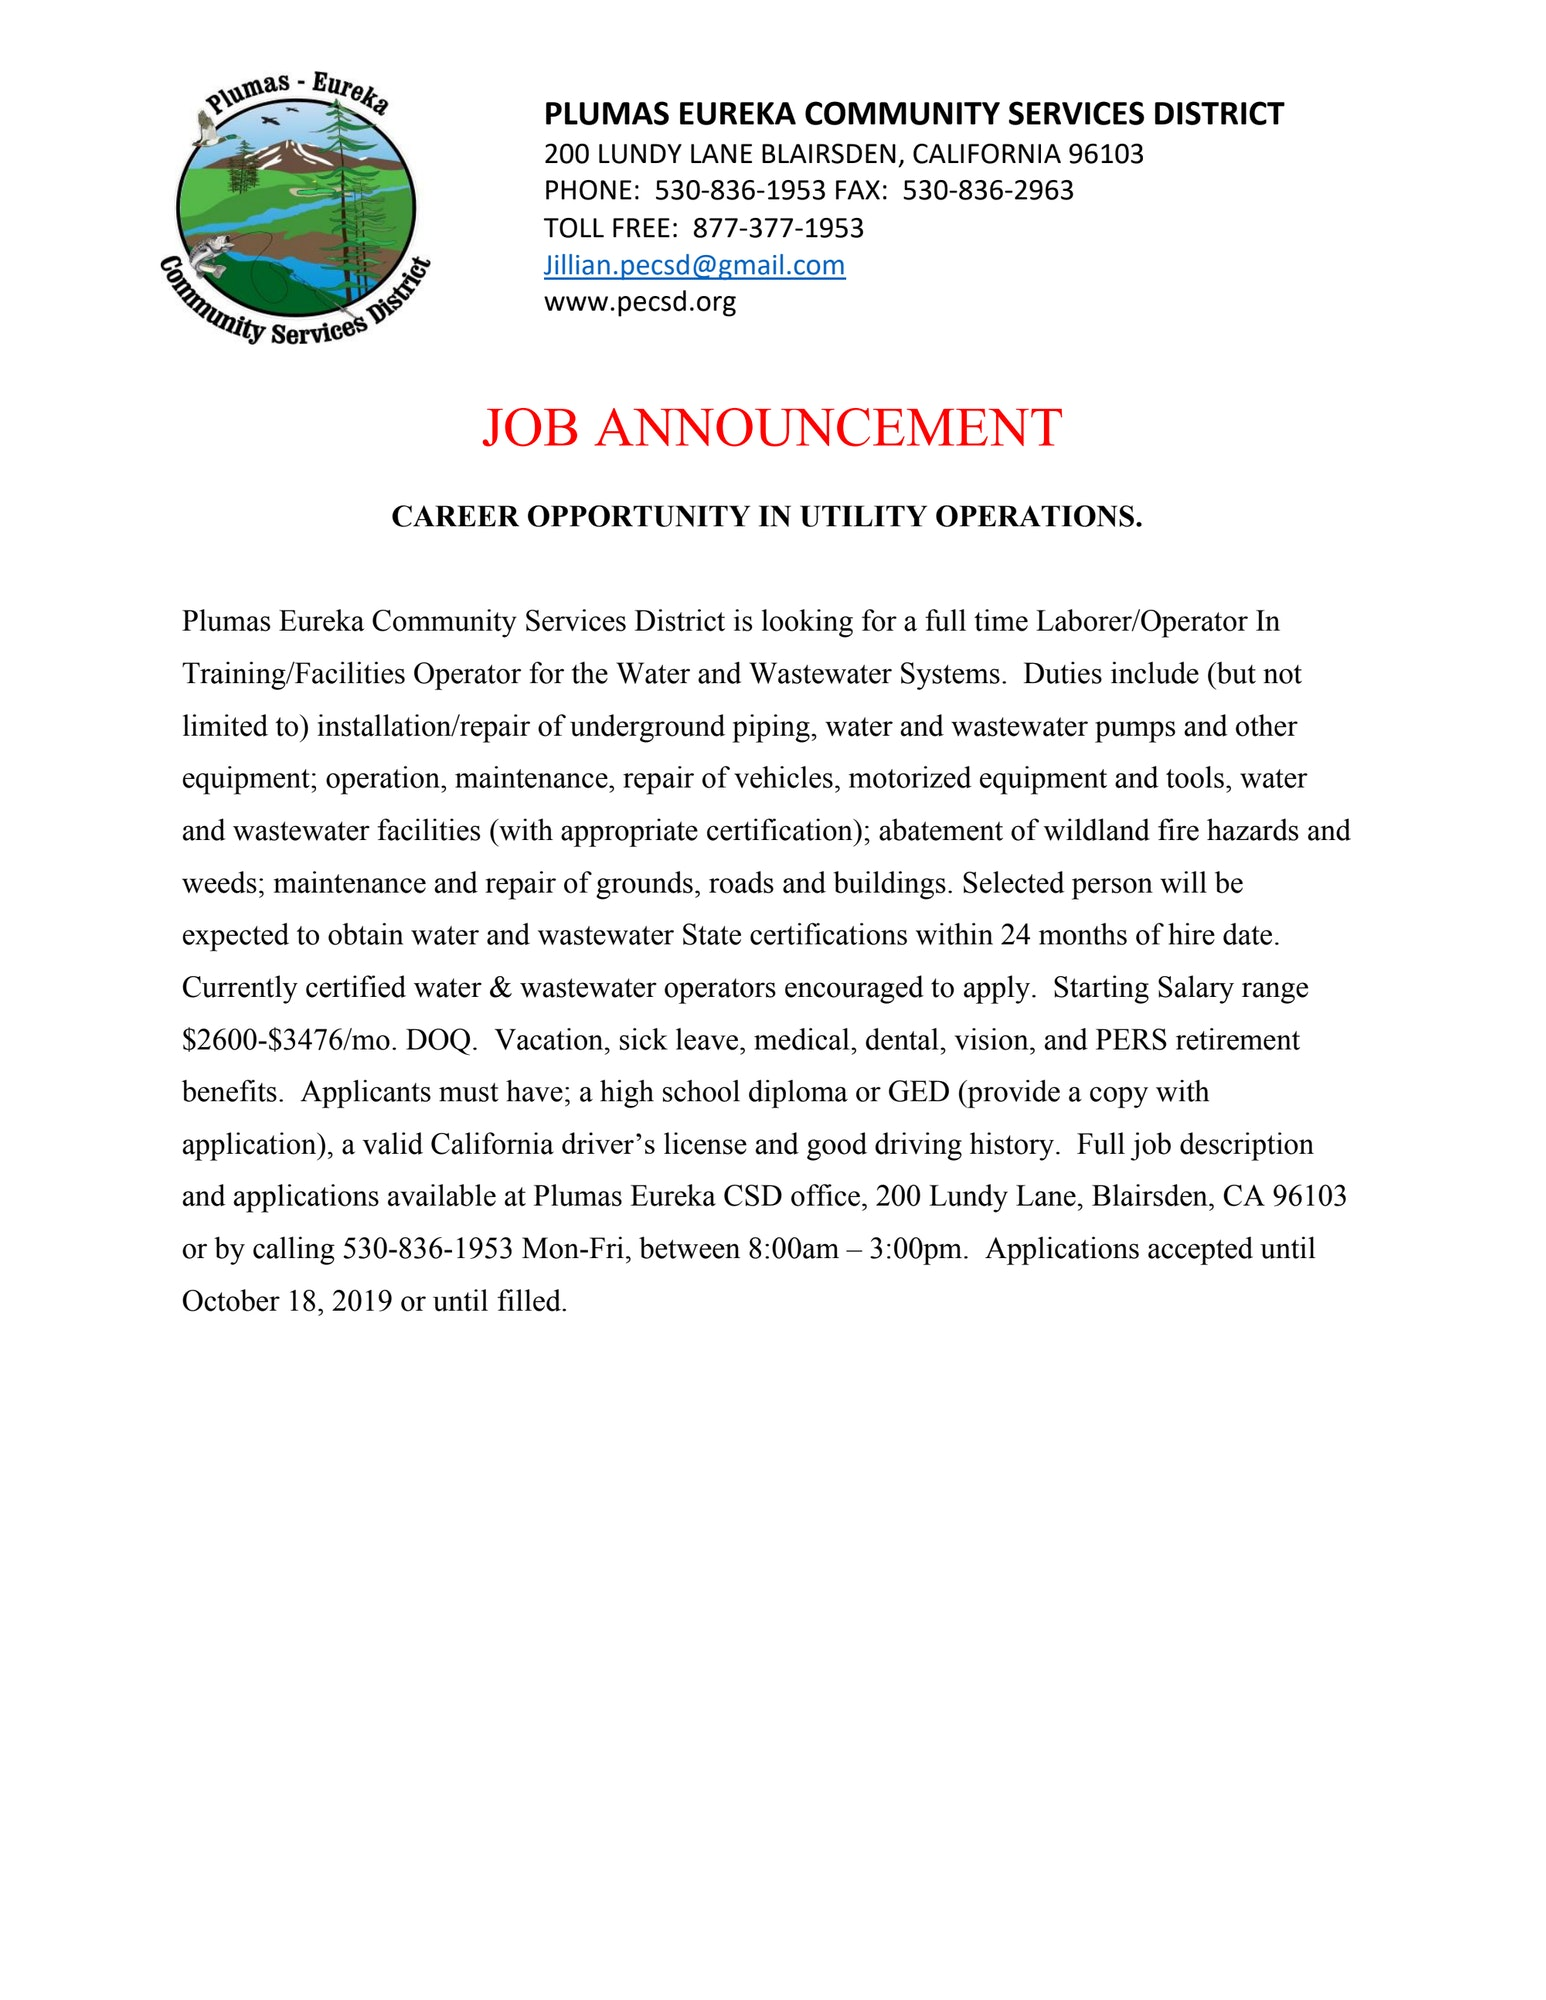 JOB ANNOUNCEMENT  CAREER OPPORTUNITY IN UTILITY OPERATIONS.  Plumas Eureka Community Services District is looking for a full time Laborer/Operator In Training/Facilities Operator for the Water and Wastewater Systems.  Duties include (but not limited to) installation/repair of underground piping, water and wastewater pumps and other equipment; operation, maintenance, repair of vehicles, motorized equipment and tools, water and wastewater facilities (with appropriate certification); abatement of wildland fire hazards and weeds; maintenance and repair of grounds, roads and buildings. Selected person will be expected to obtain water and wastewater State certifications within 24 months of hire date.  Currently certified water & wastewater operators encouraged to apply.  Starting Salary range $2600-$3476/mo. DOQ.  Vacation, sick leave, medical, dental, vision, and PERS retirement benefits.  Applicants must have; a high school diploma or GED (provide a copy with application), a valid California driver's license and good driving history.  Full job description and applications available at Plumas Eureka CSD office, 200 Lundy Lane, Blairsden, CA 96103 or by calling 530-836-1953 Mon-Fri, between 8:00am – 3:00pm.  Applications accepted until October 18, 2019 or until filled.